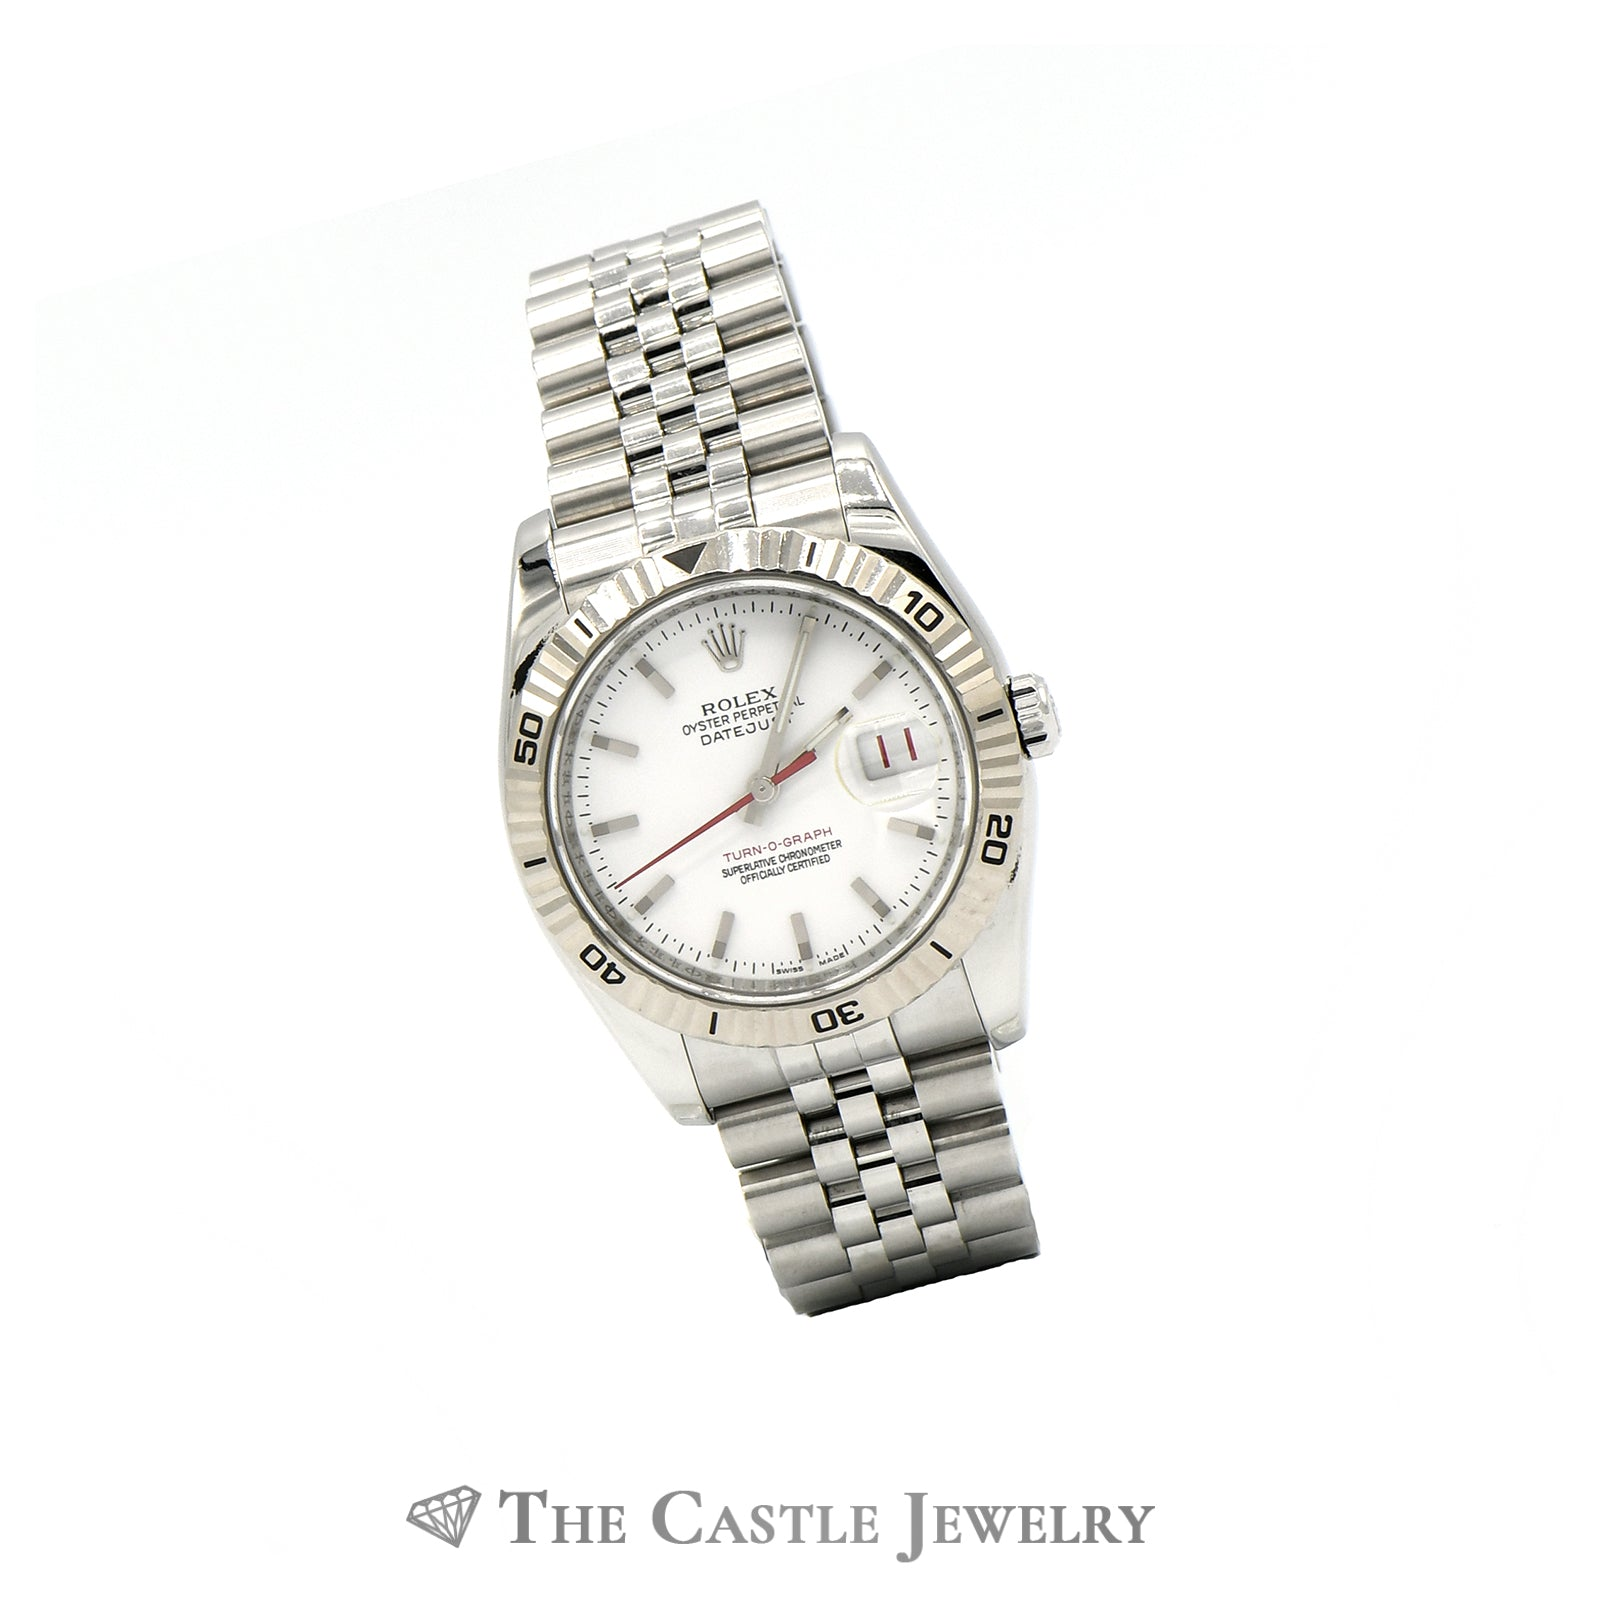 Rolex 36mm 18k Turn-O-Graph Bezel Datejust 11624 with White Dial & Jubilee Band-2